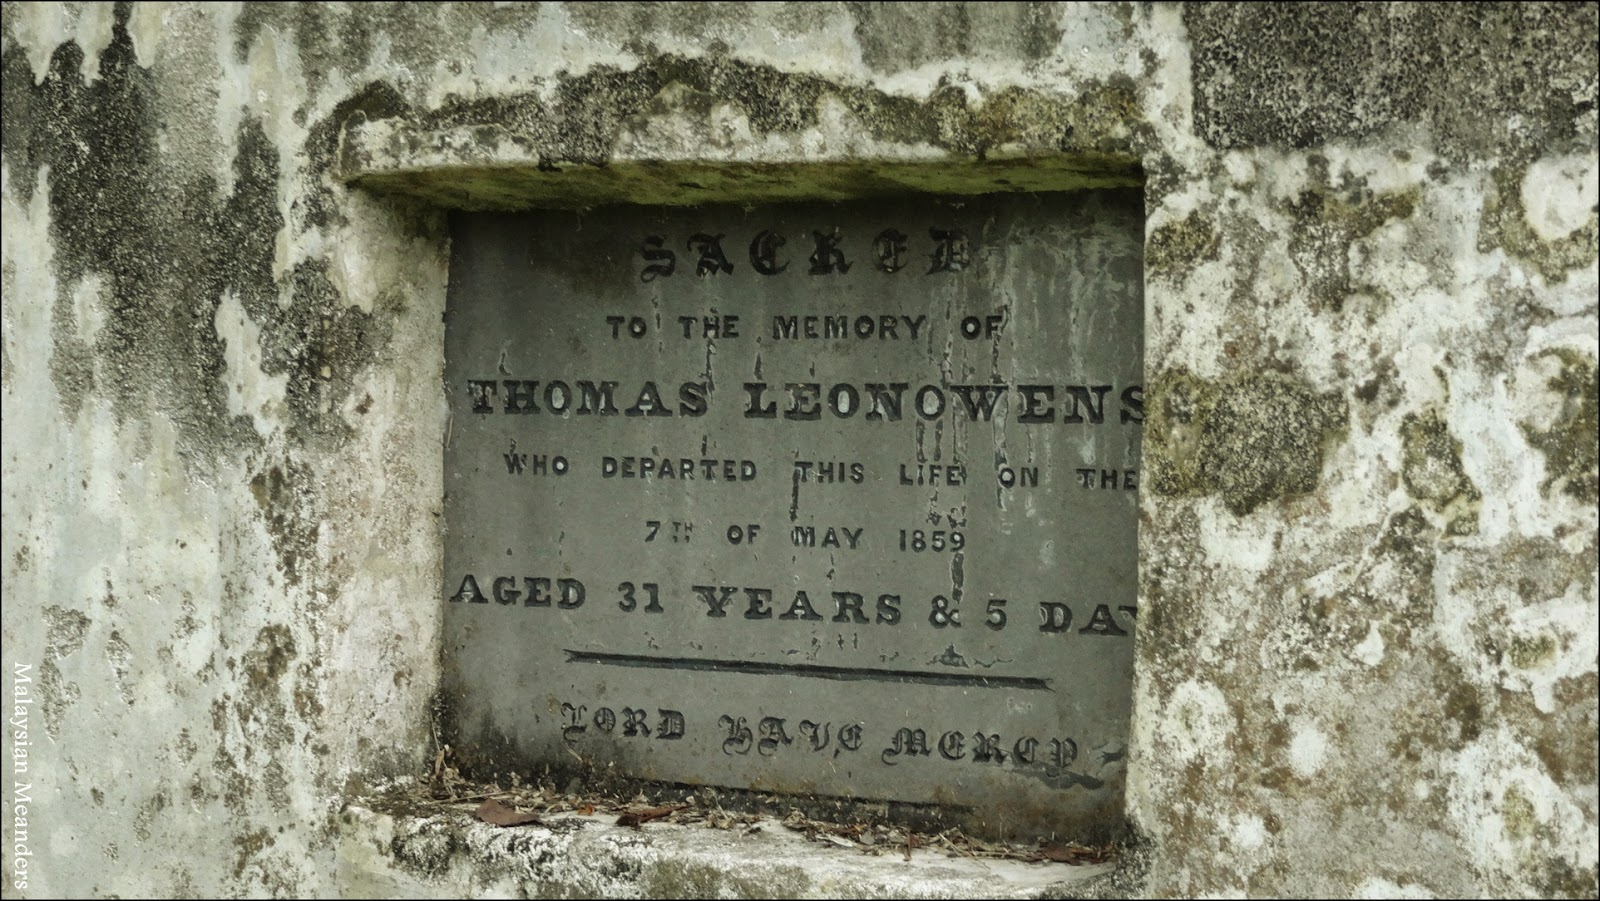 Old Protestant Cemetery, Penang, Anna Leonowens